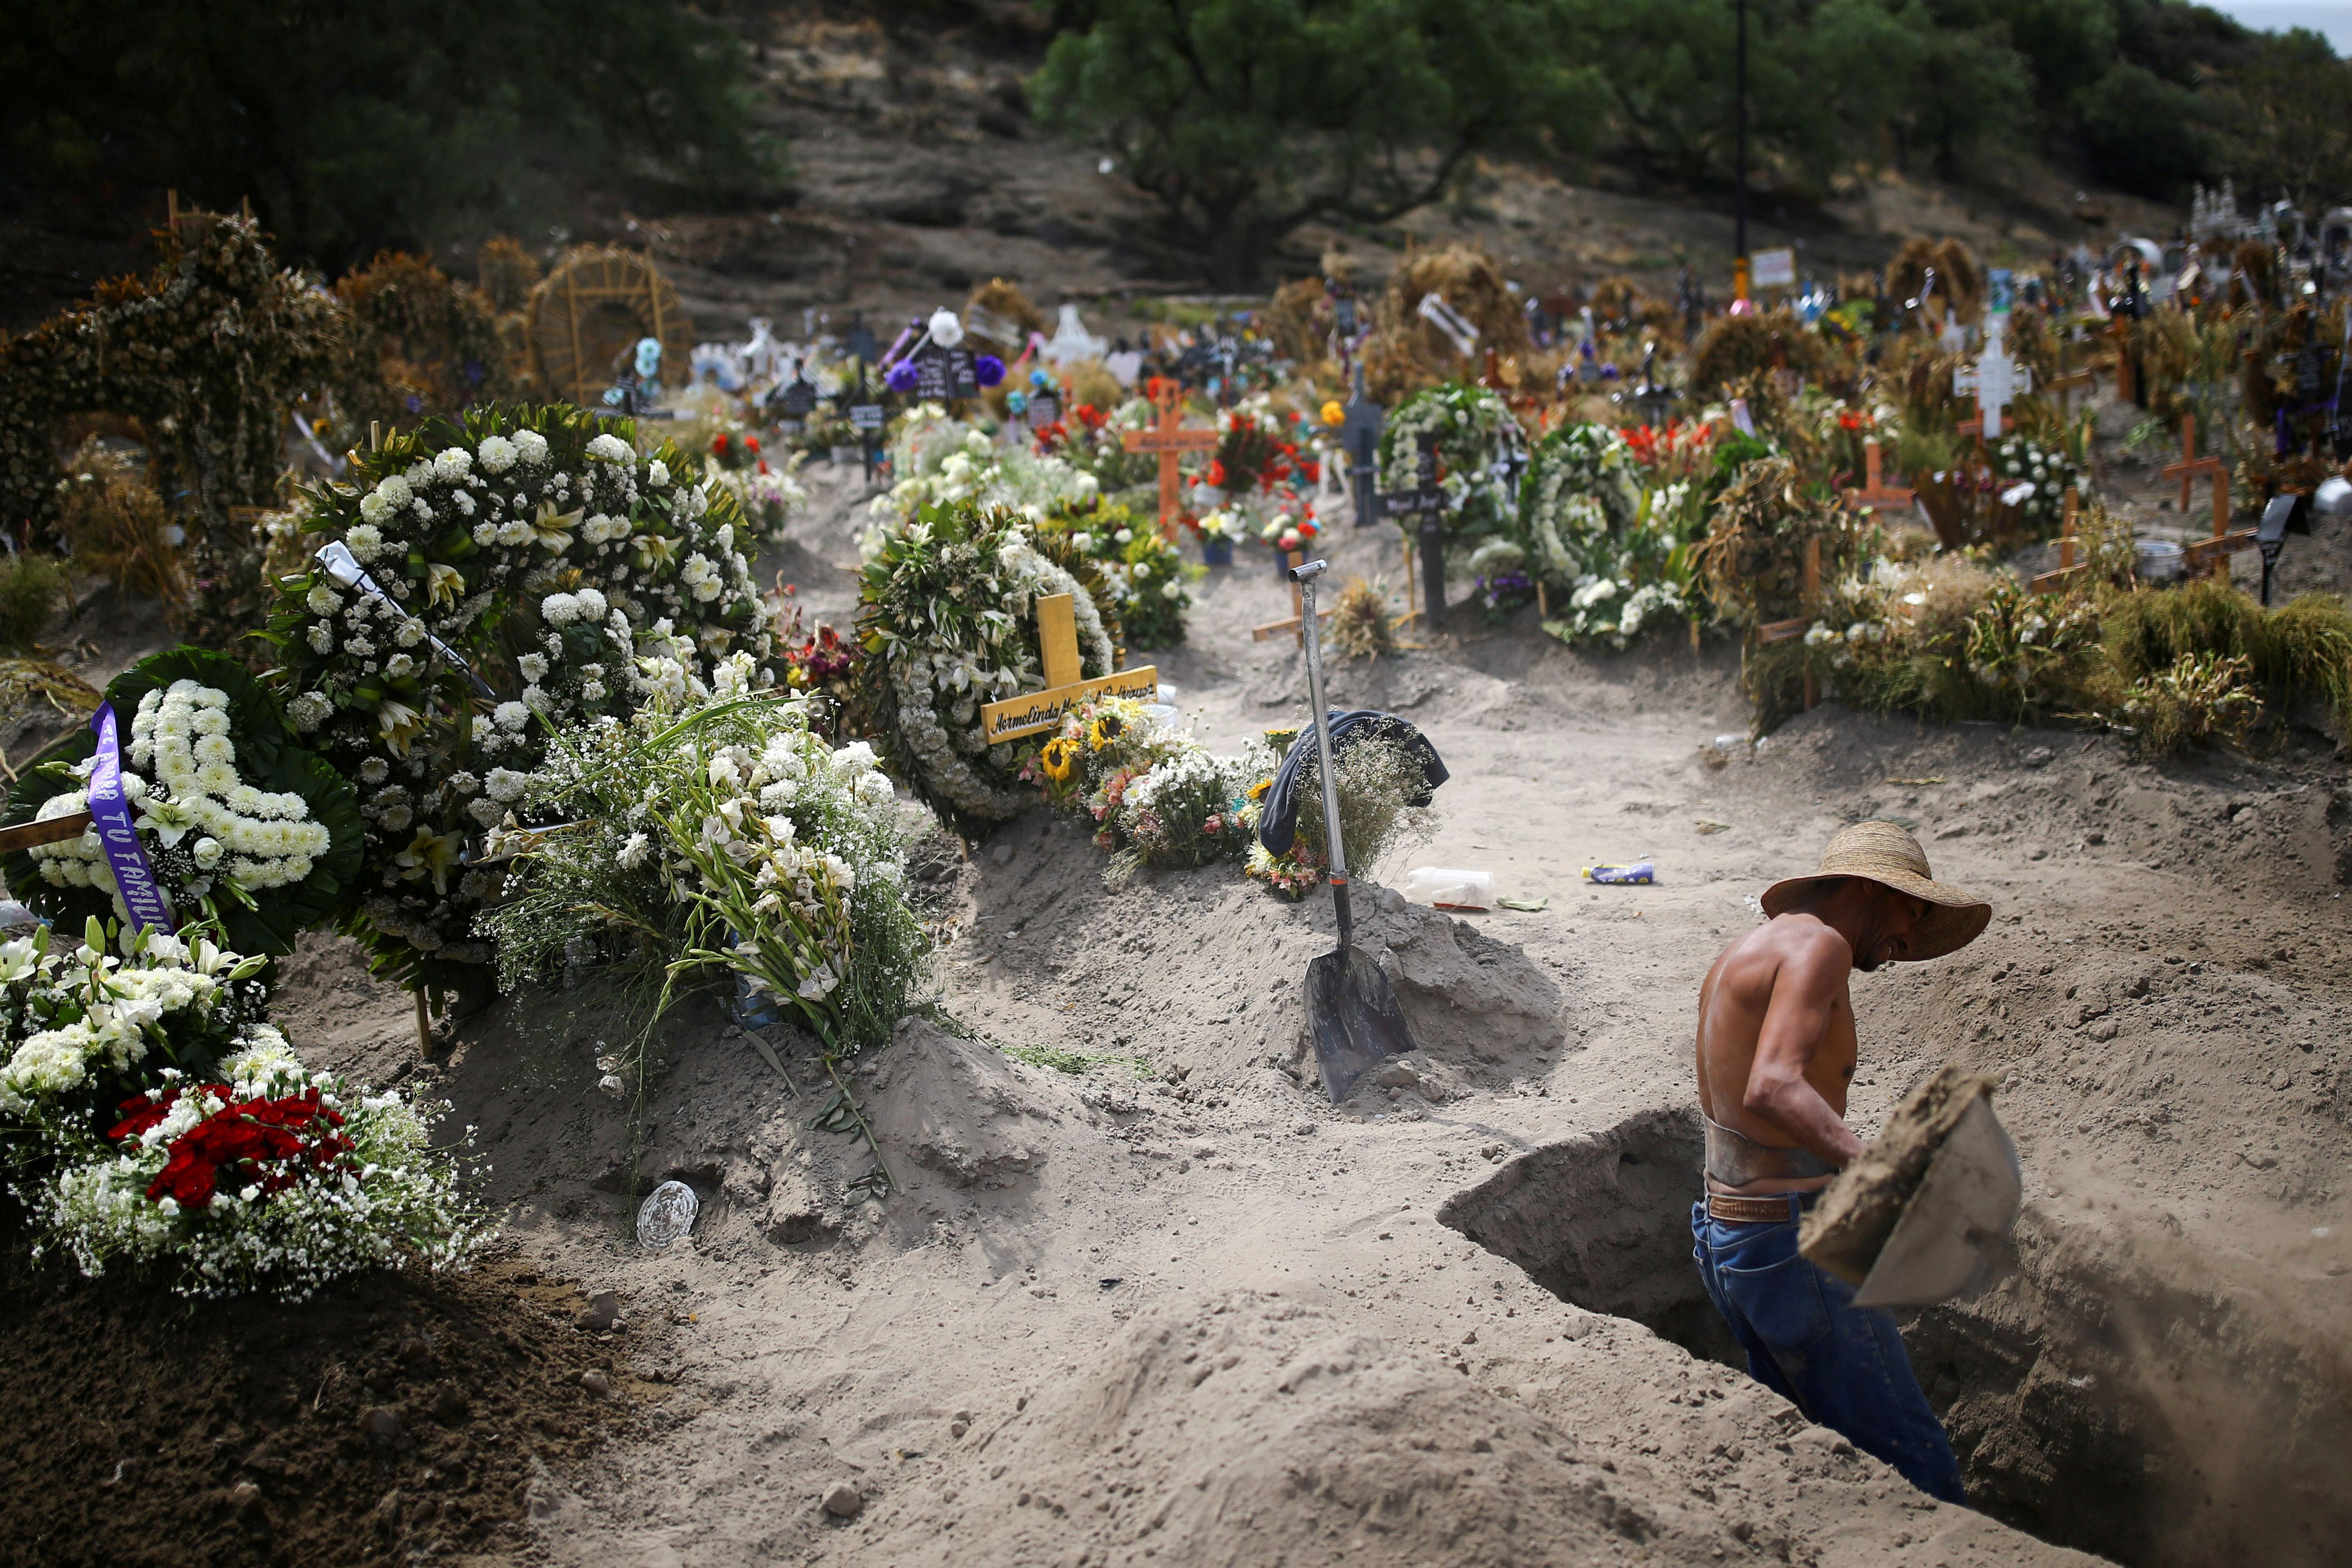 A cemetery worker digs new graves at the Xico cemetery on the outskirts of Mexico City, as the coronavirus disease (COVID-19) outbreak continues in Mexico, June 10, 2020. REUTERS/Edgard Garrido     TPX IMAGES OF THE DAY - RC2O6H9O5G20